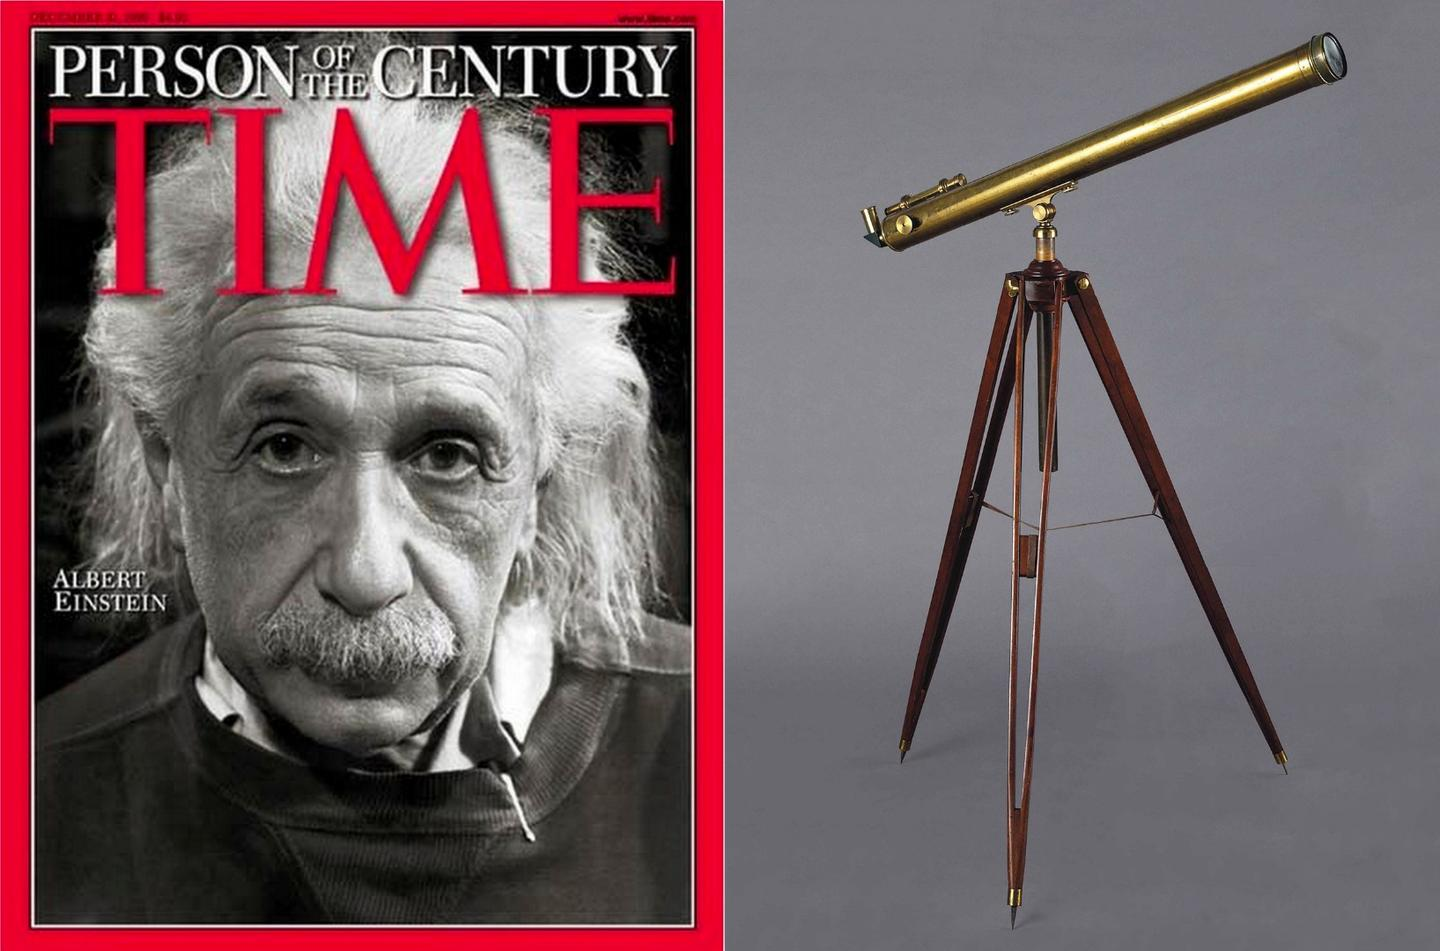 Albert Einstein's telescopefetched a healthy $432,500 at auction, becoming one of the most valuable scientific instruments ever sold at auction.